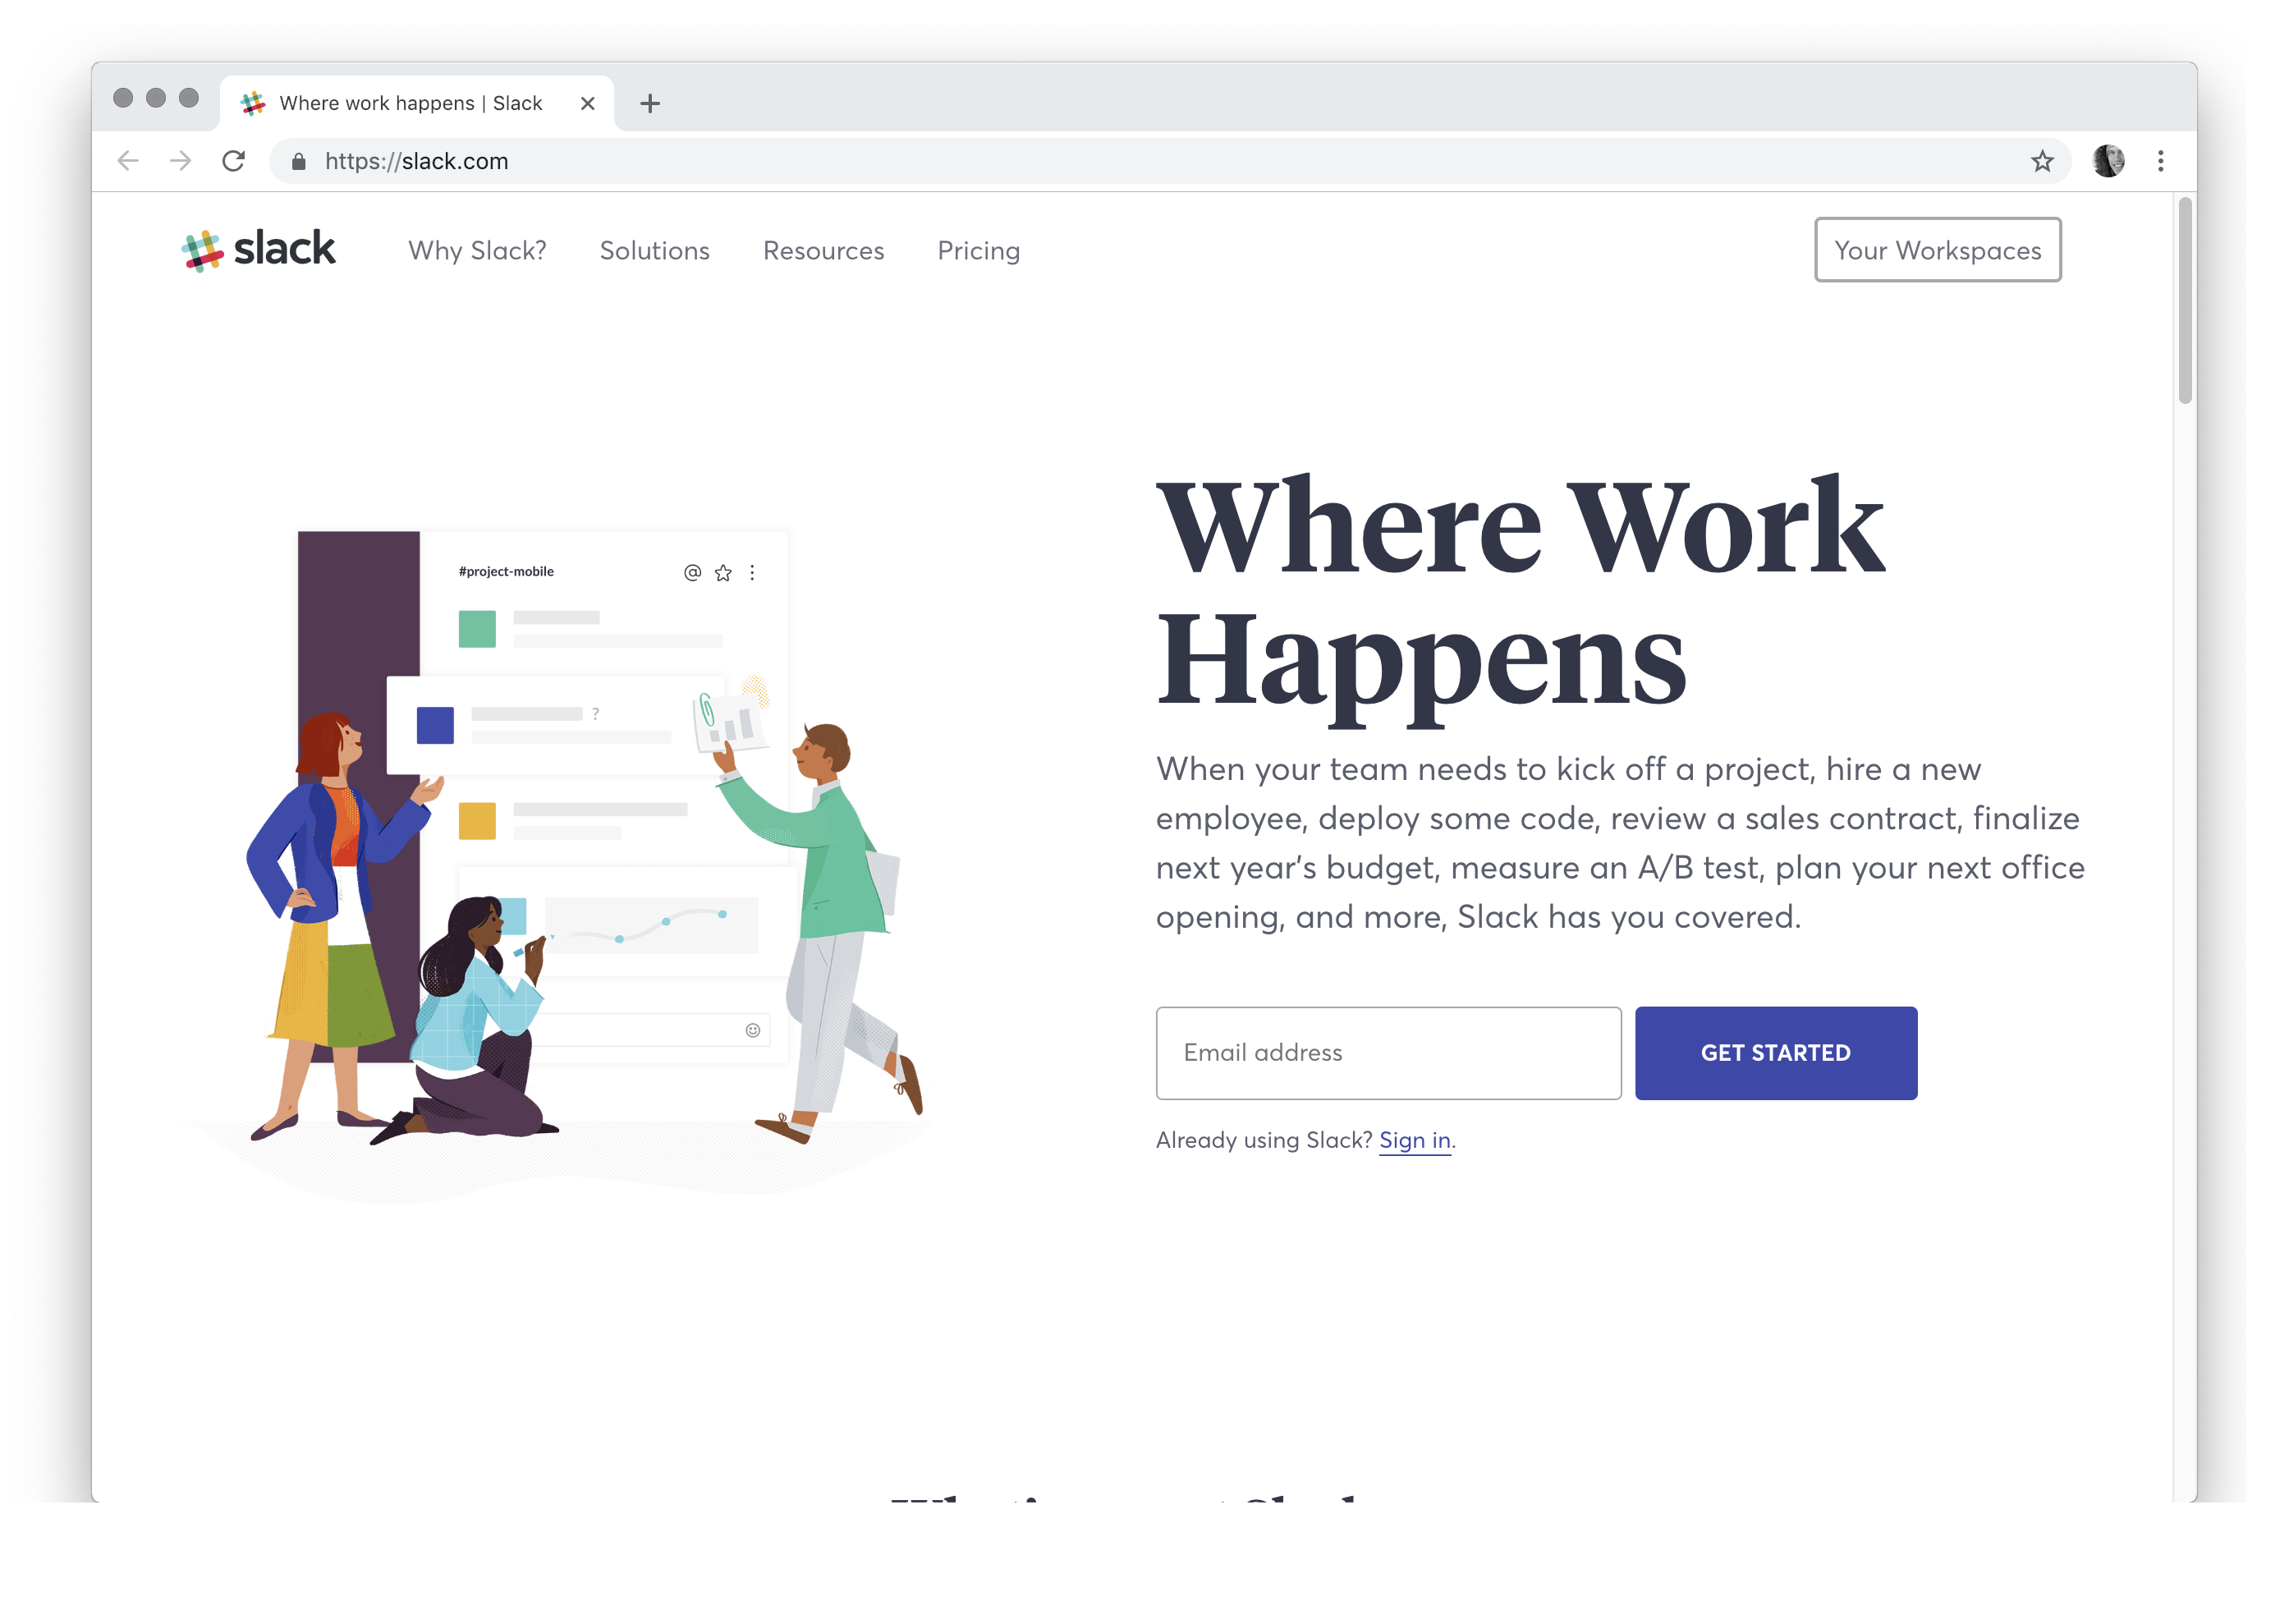 Where Work Happens When your team needs to kick off a project, hire a new employee, deploy some code, review a sales contract, finalize next year's budget, measure an A/B test, plan your next office opening, and more, Slack has you covered.